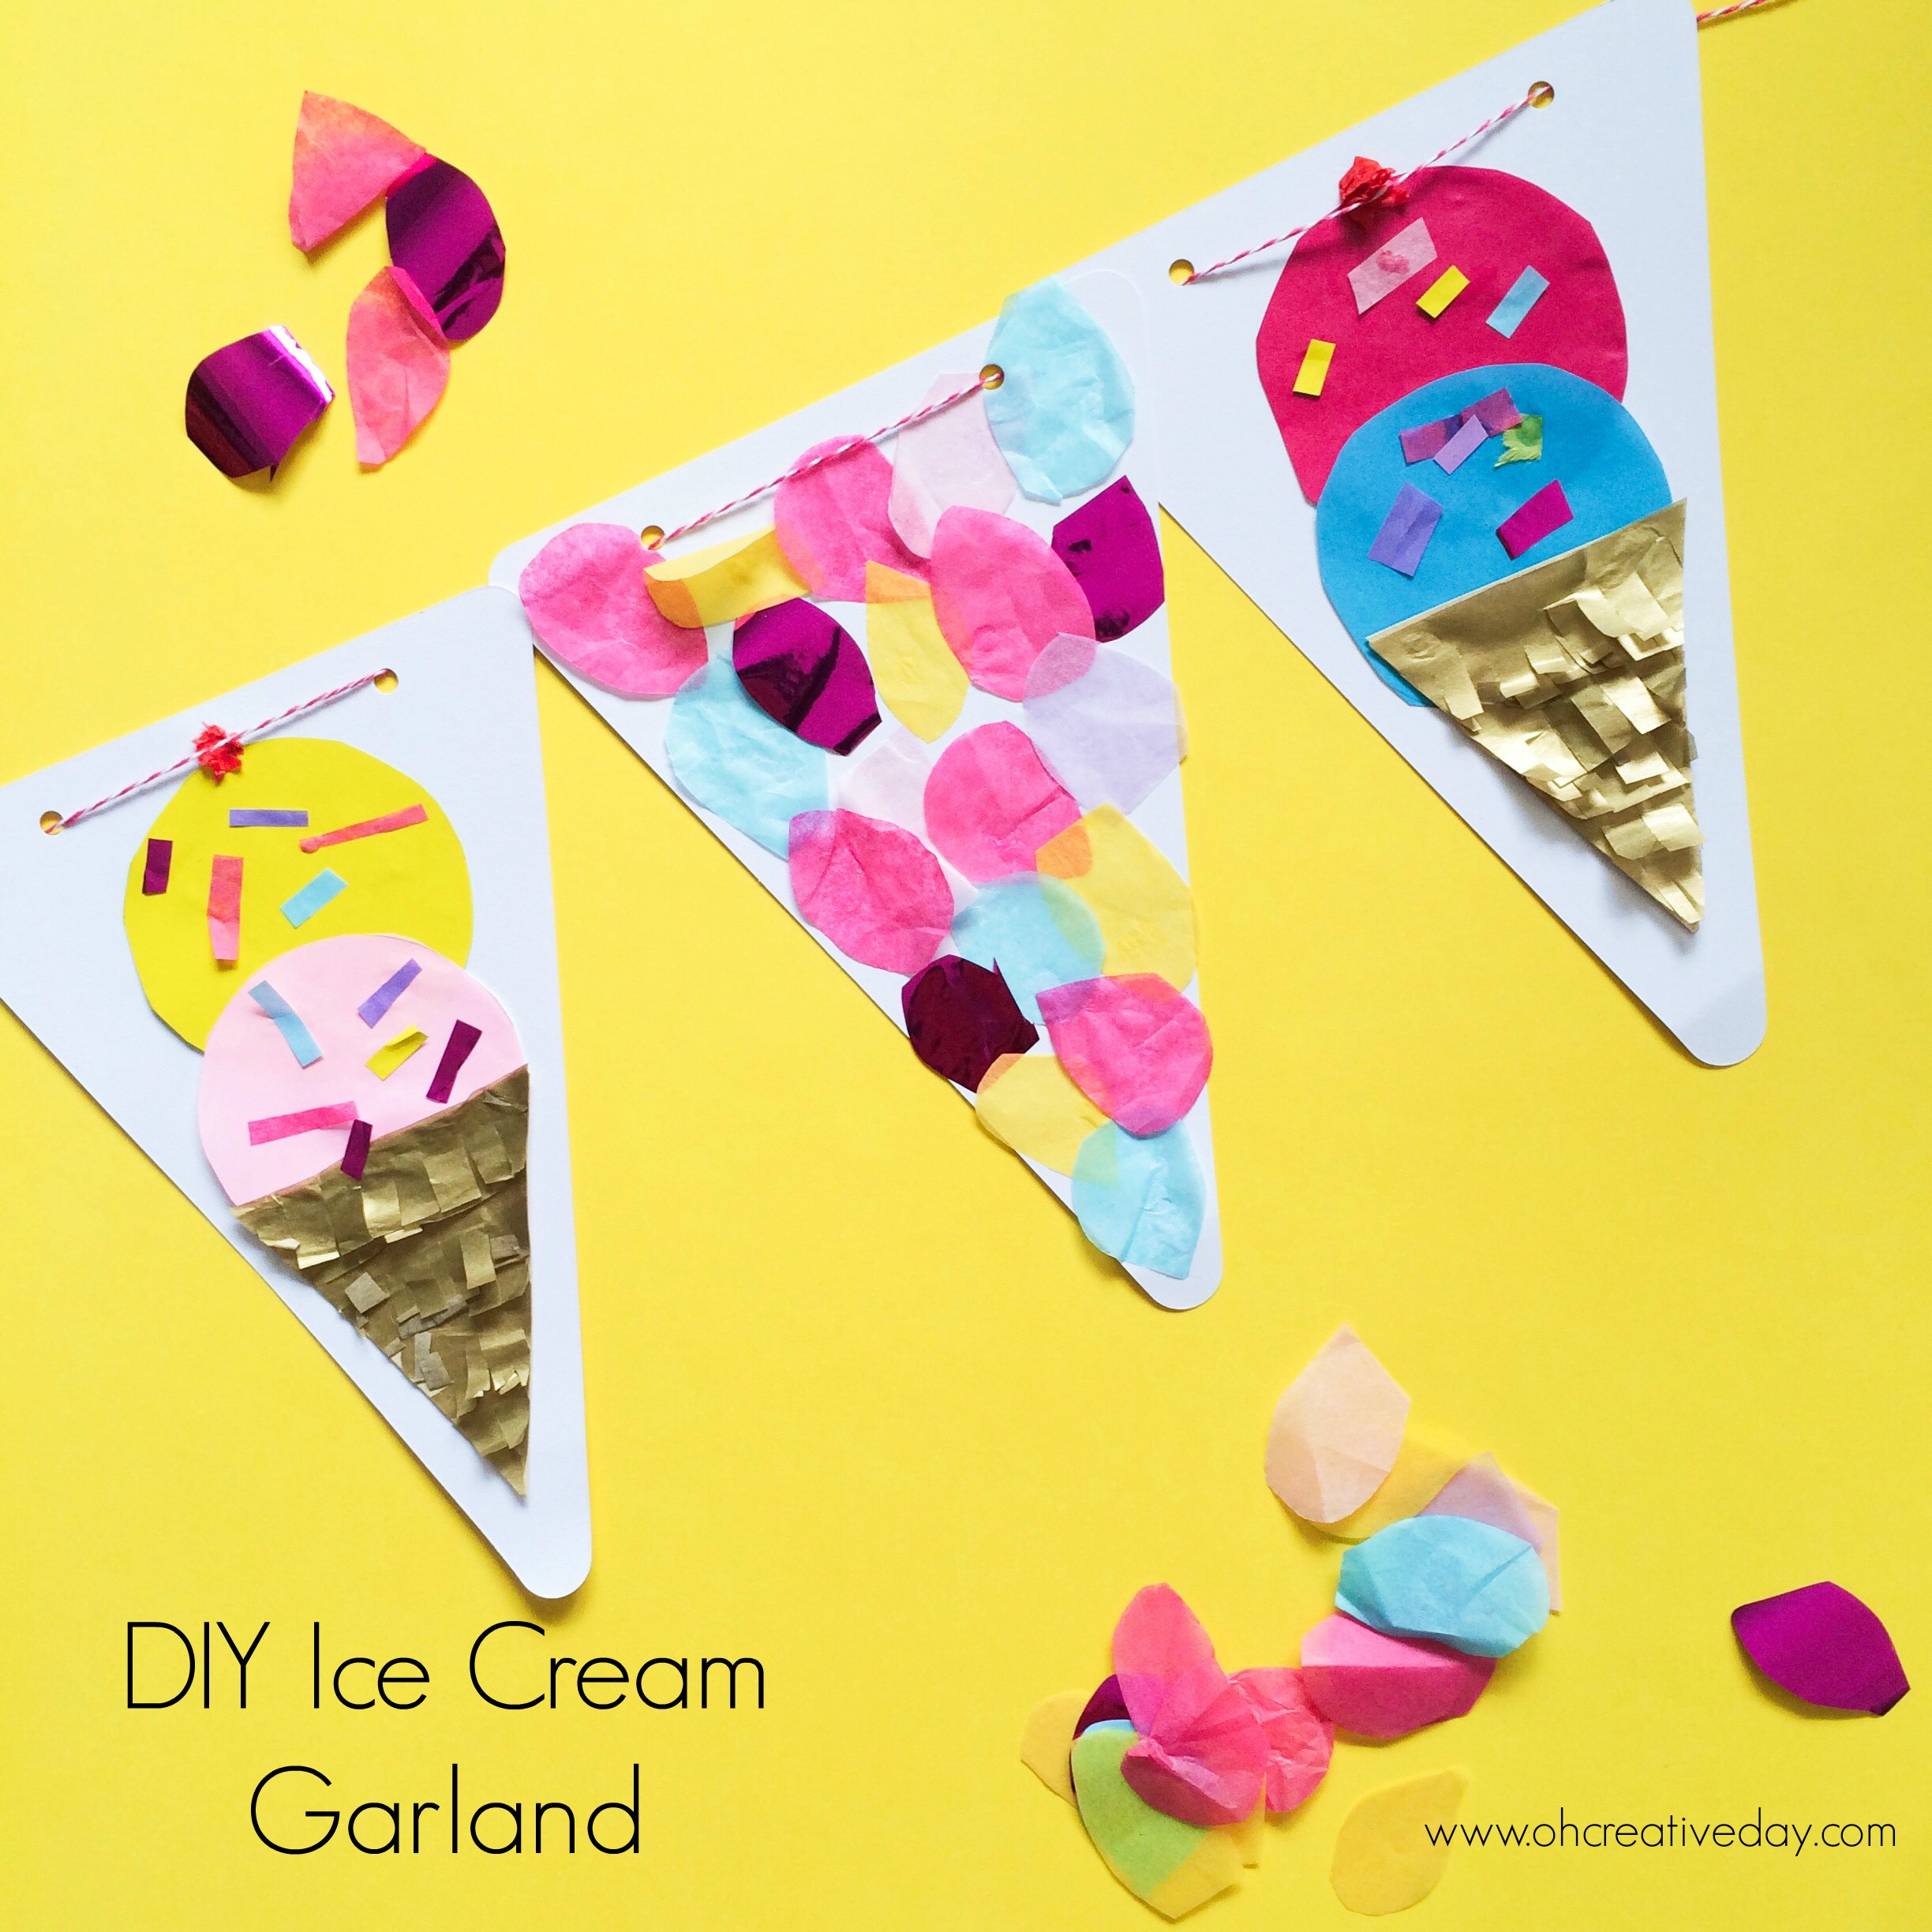 DIY Ice Cream Garland www.ohcreativeday.com